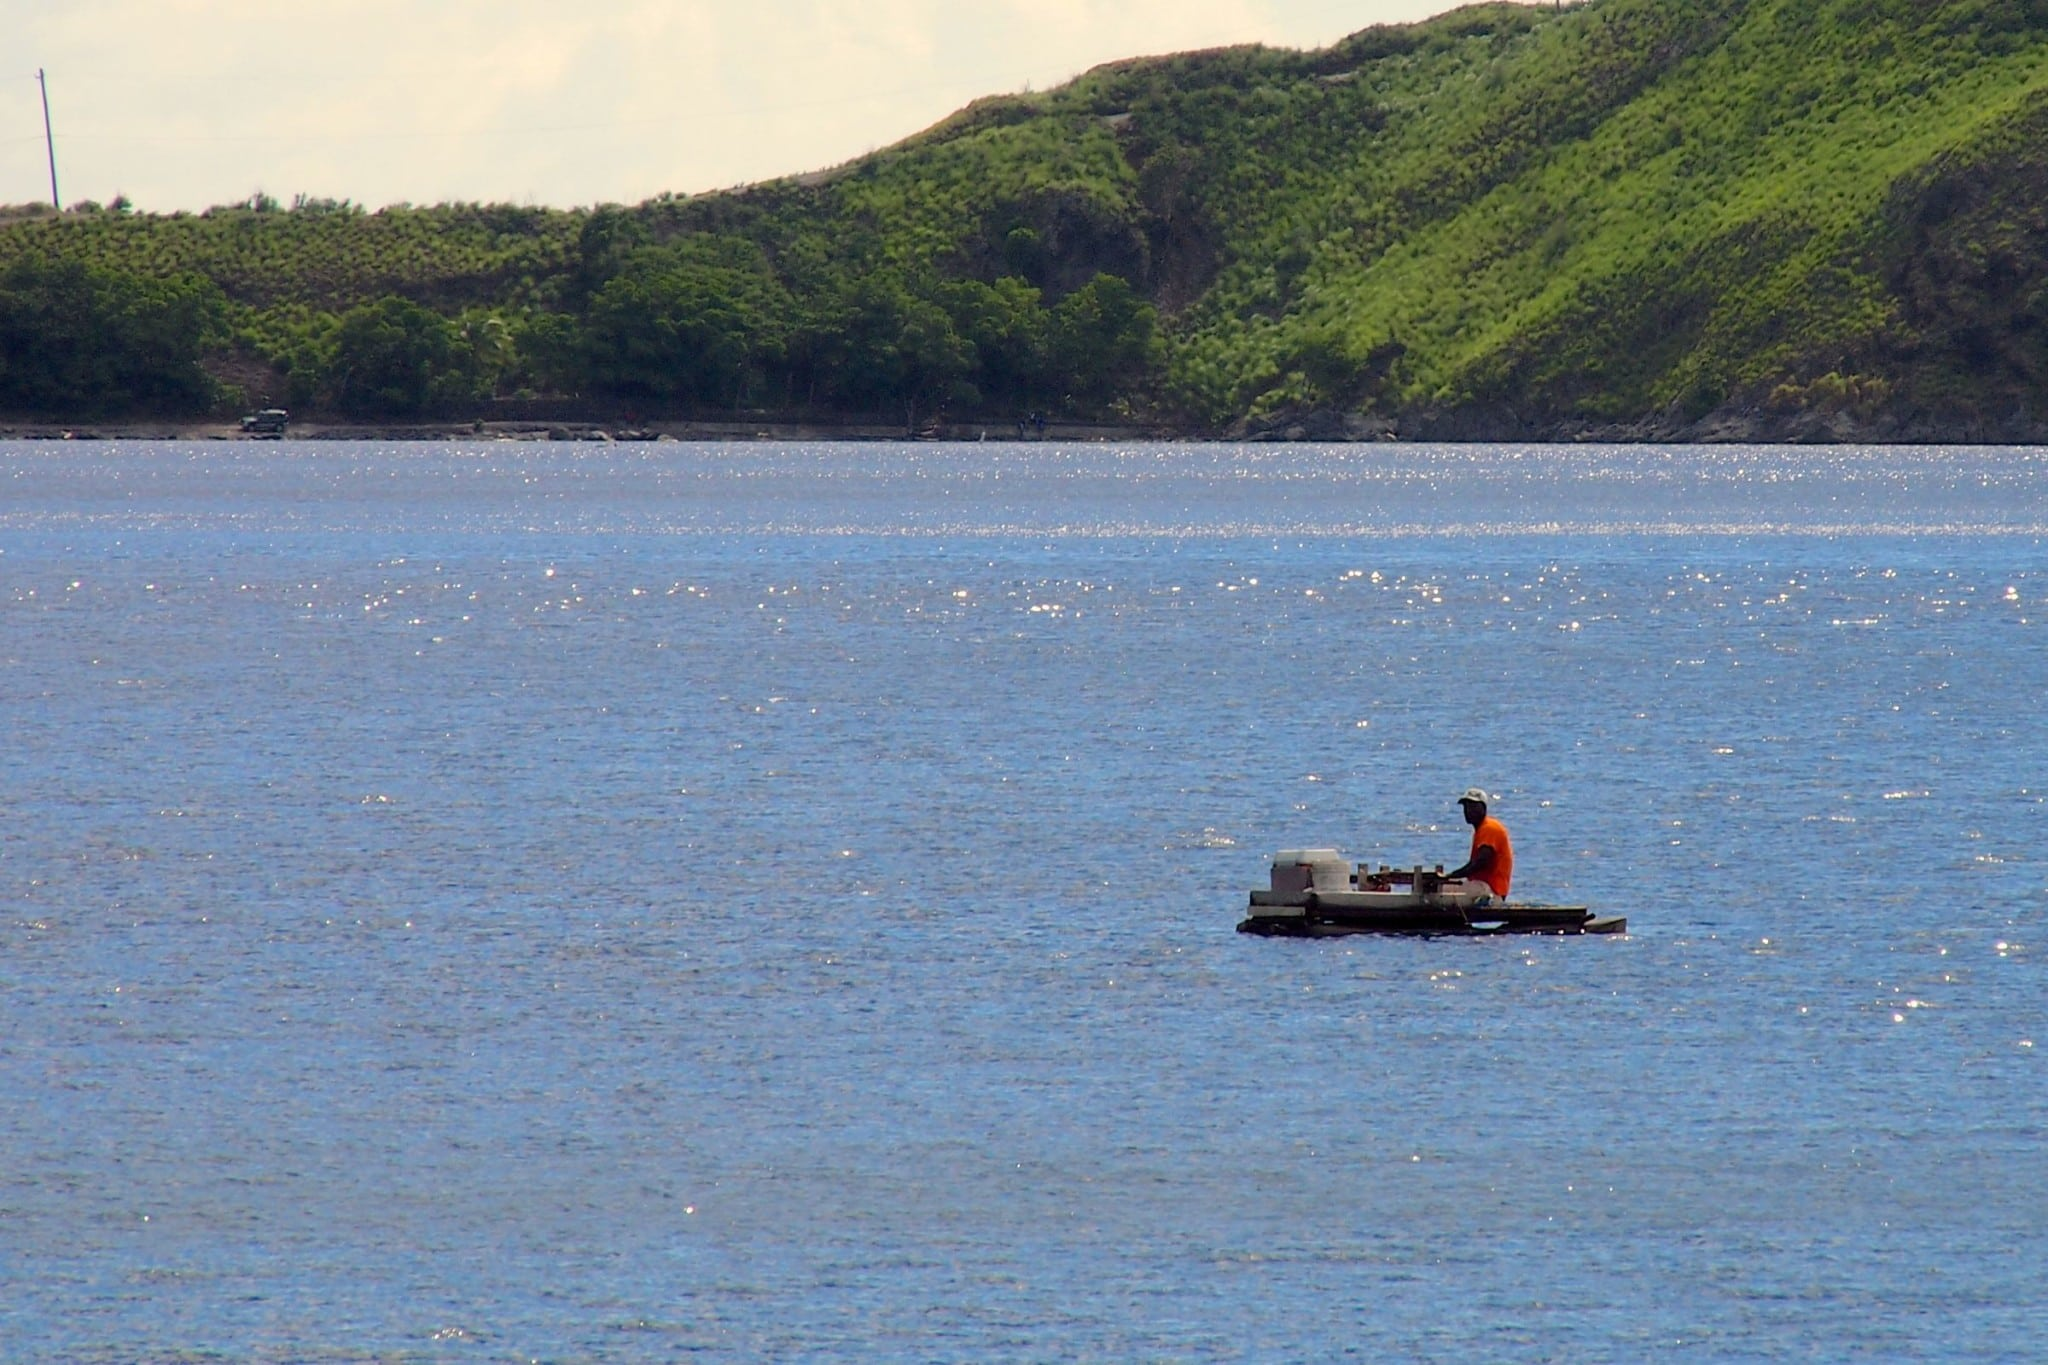 Pwi Pwi Fishing in Soufriere Bay, Dominica: Photo of the Day